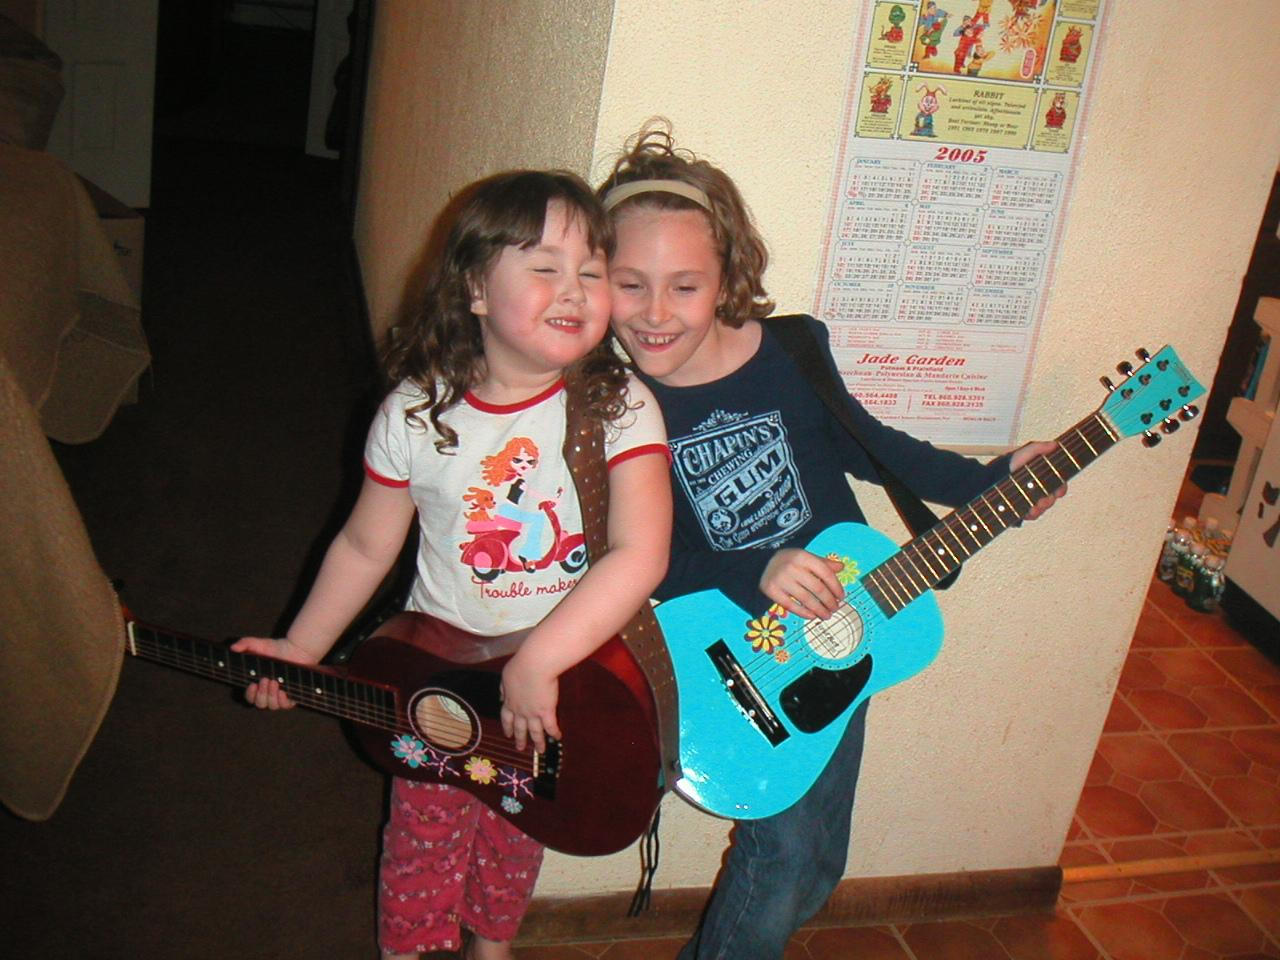 Abi and my little sister Nic with their guitars!